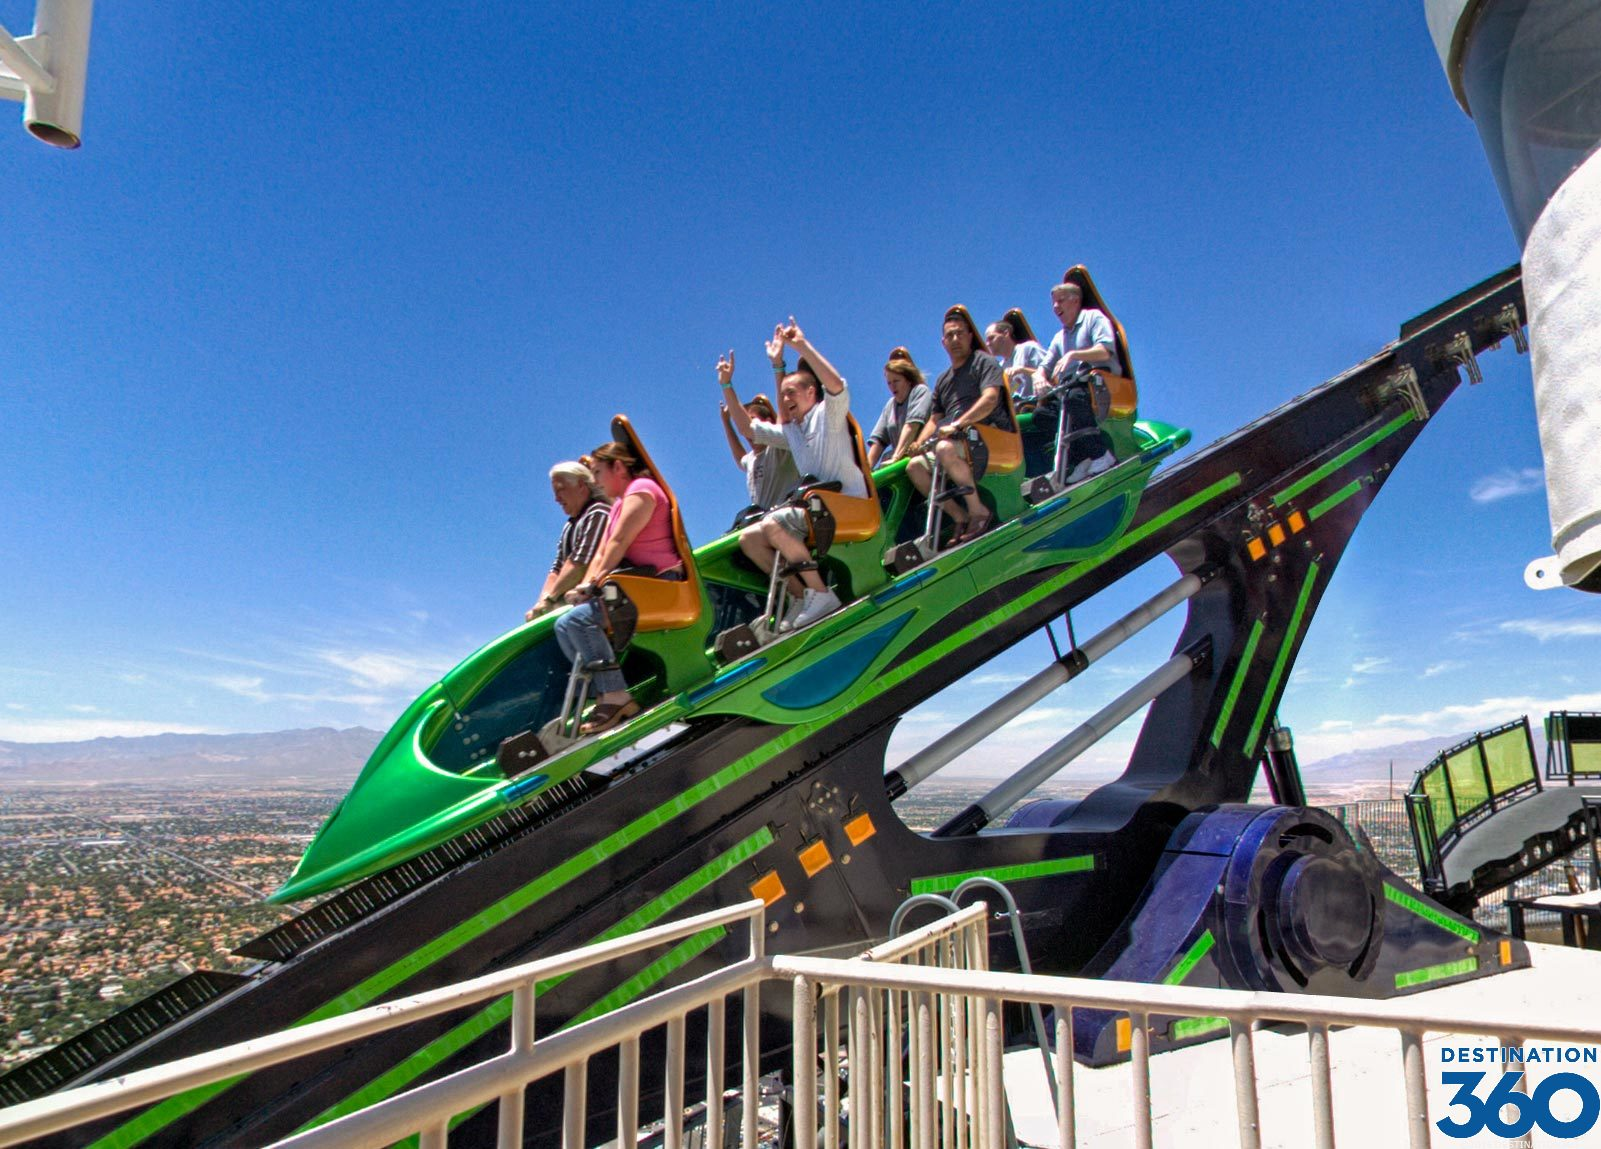 Las Vegas Roller Coaster - Stratosphere Tower - X Scream